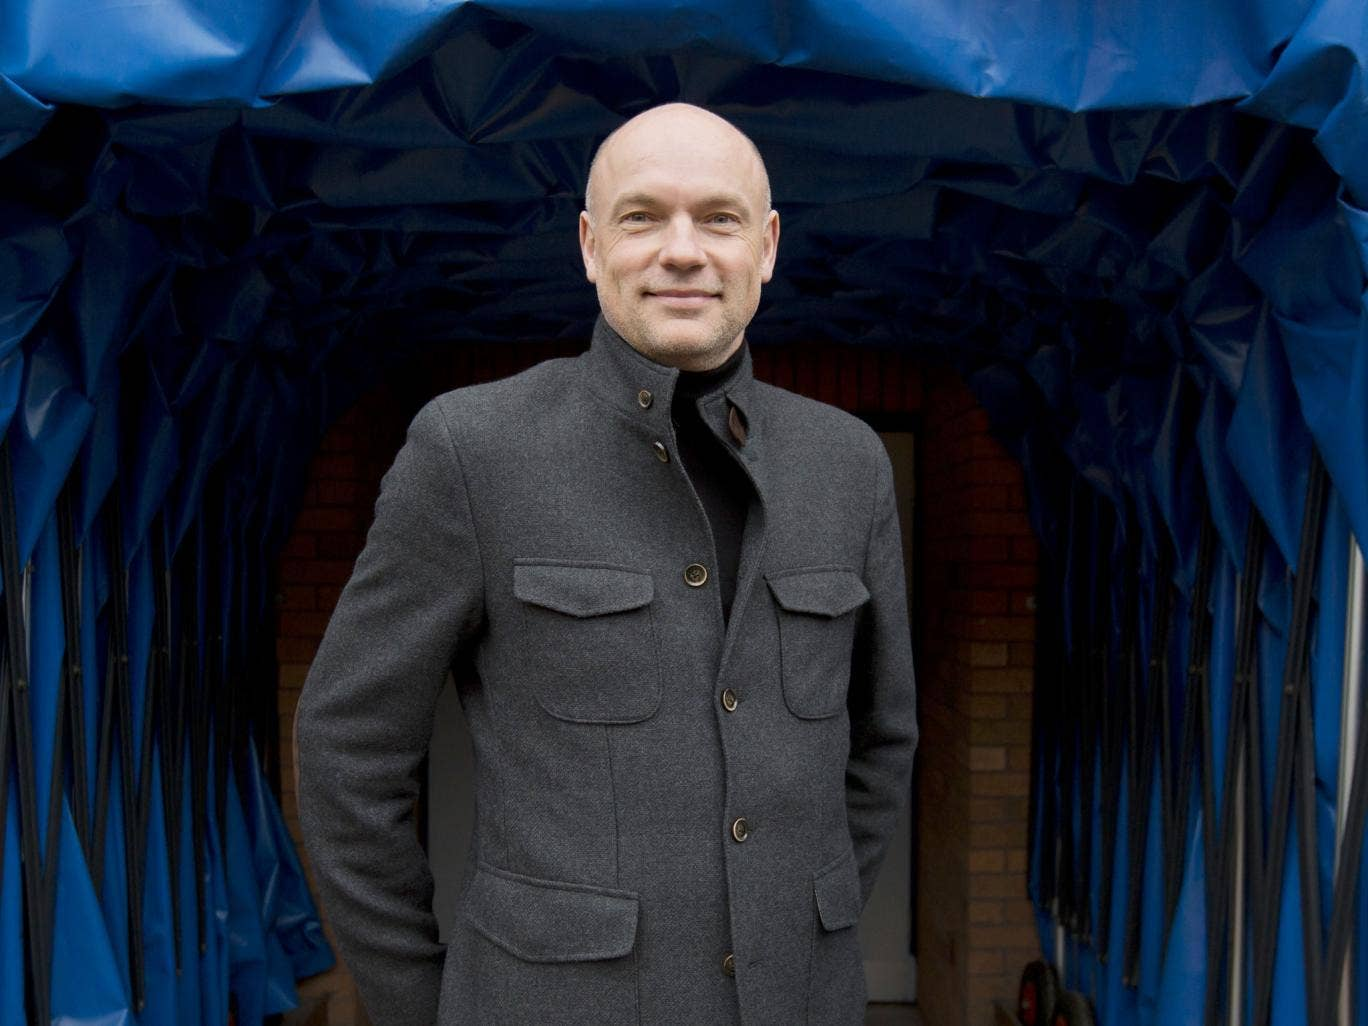 Uwe Rösler at the mouth of the Wigan tunnel